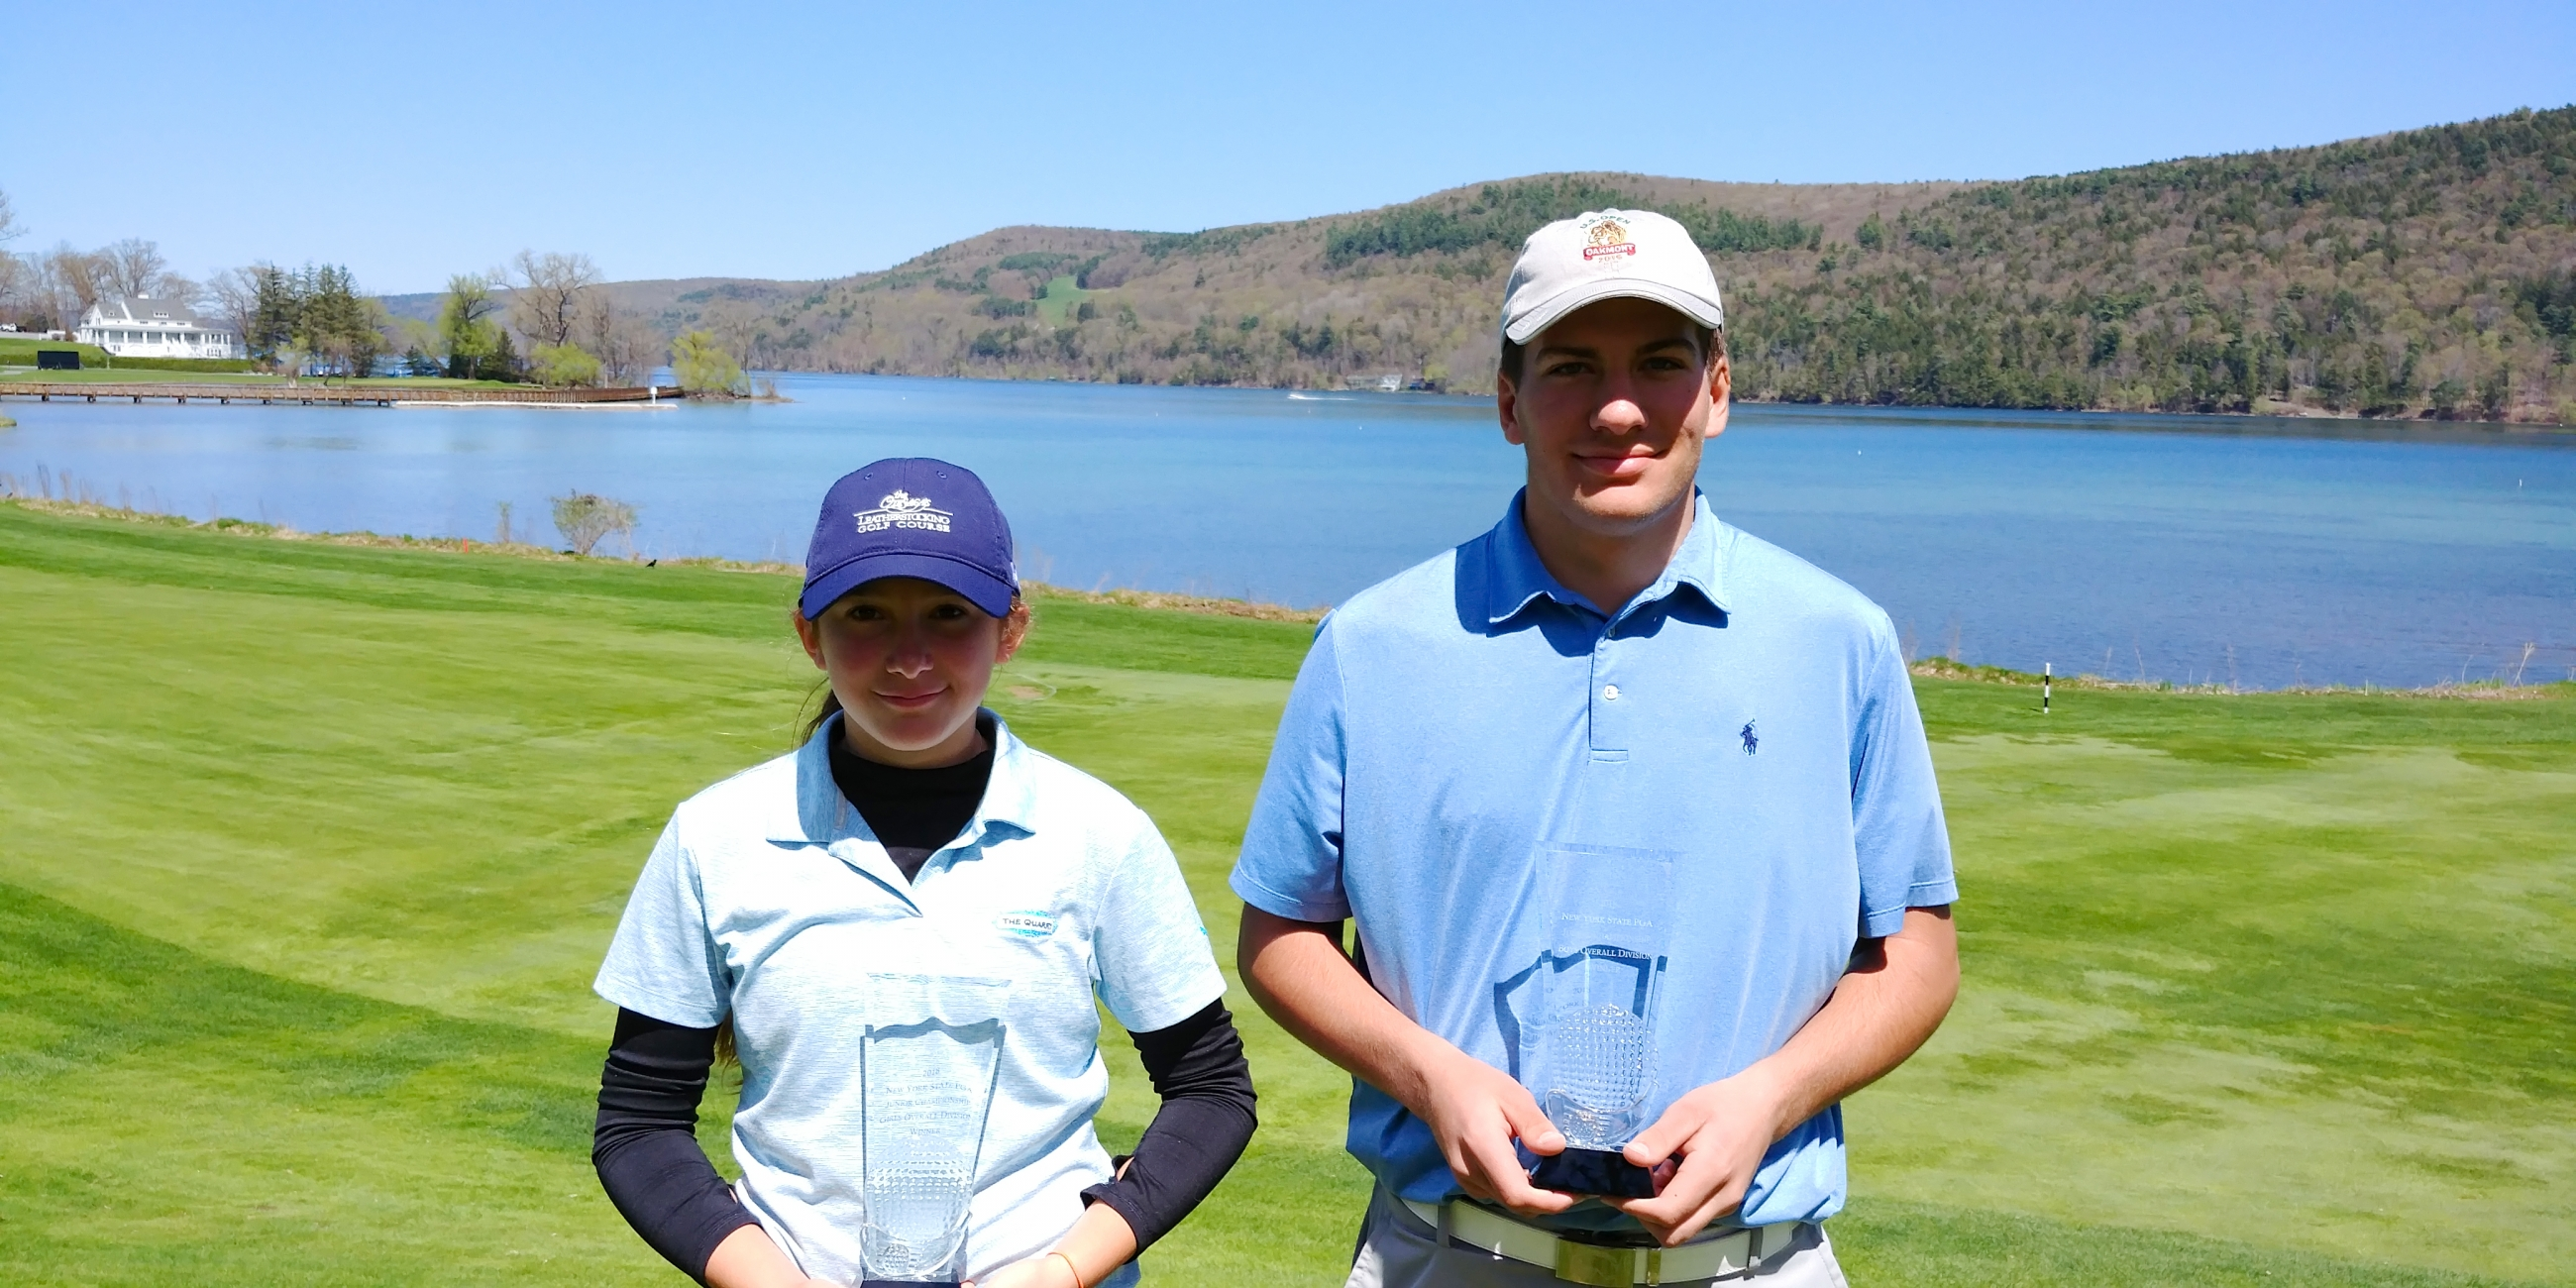 Junior Tour member Alexsandra Lapple wins Girls NY PGA Championship